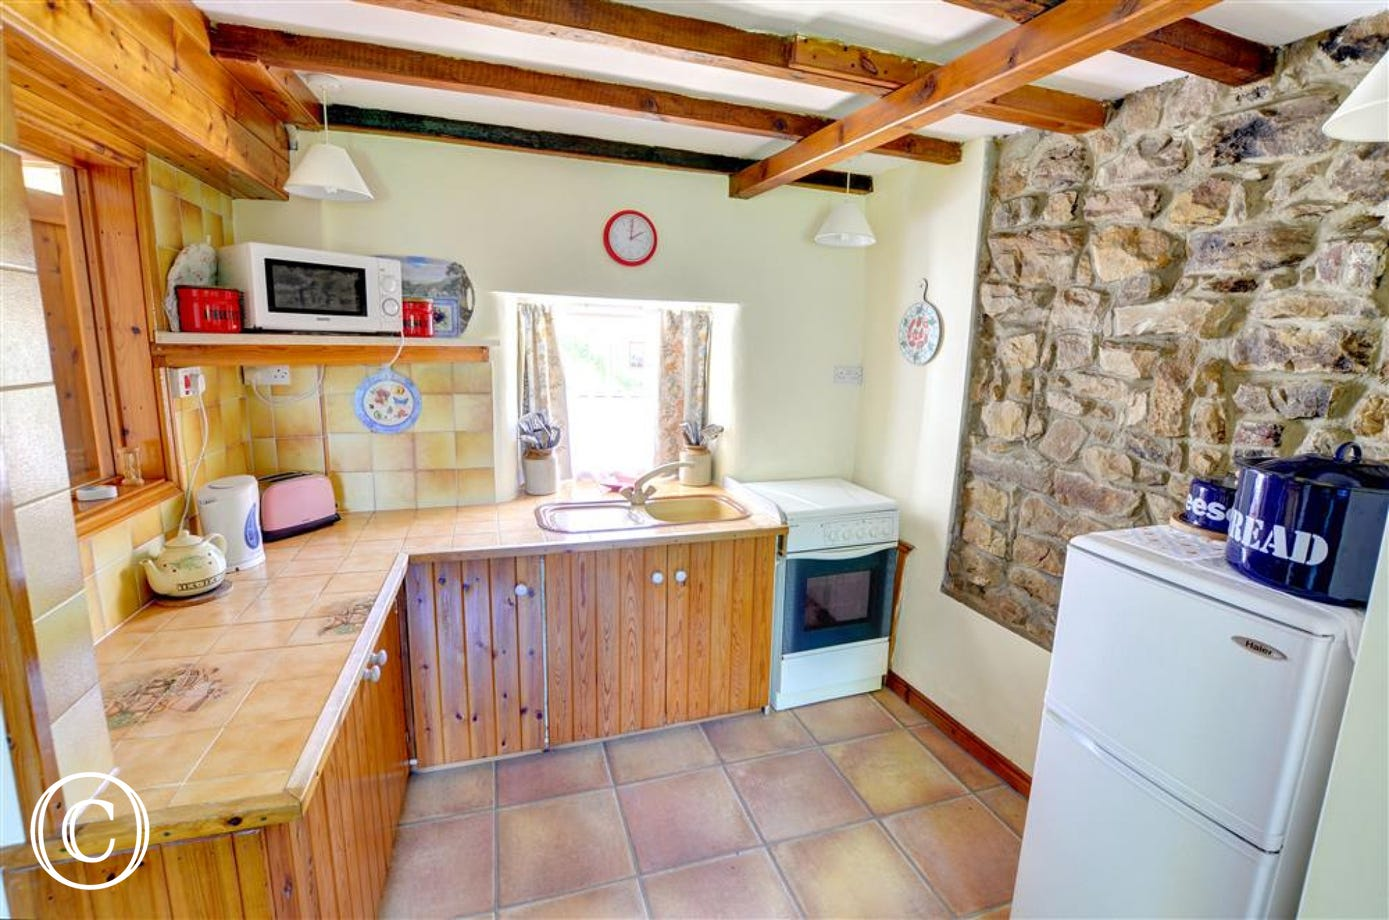 The Kitchen area is an open plan space off the Lounge which retains traditional features including a beamed ceiling and exposed stone wall.